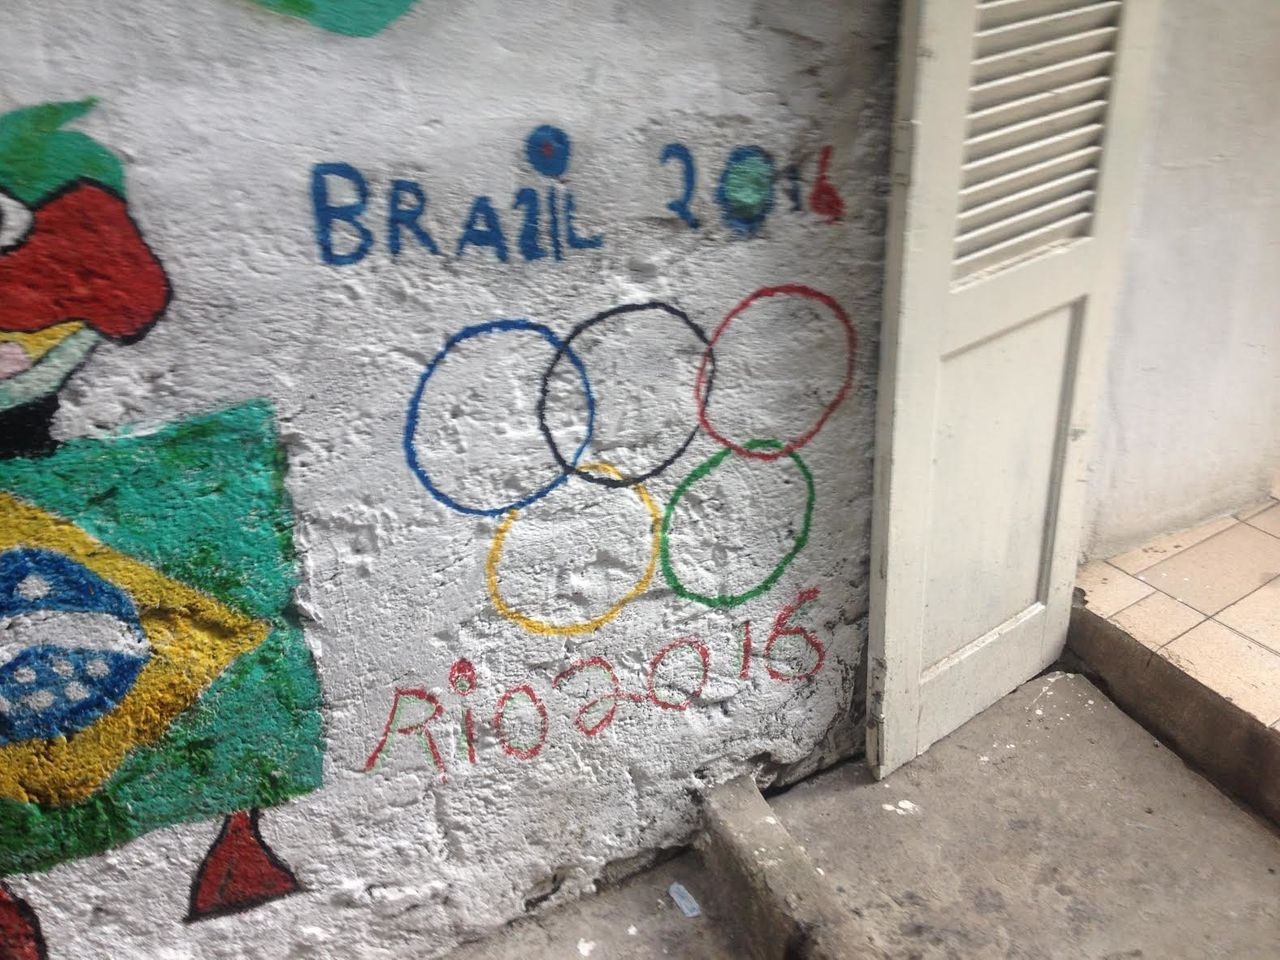 Street art in Rocinha, the largest of Rio de Janeiro's favelas, where people protested the depredations of the 2016 Olympic Games.